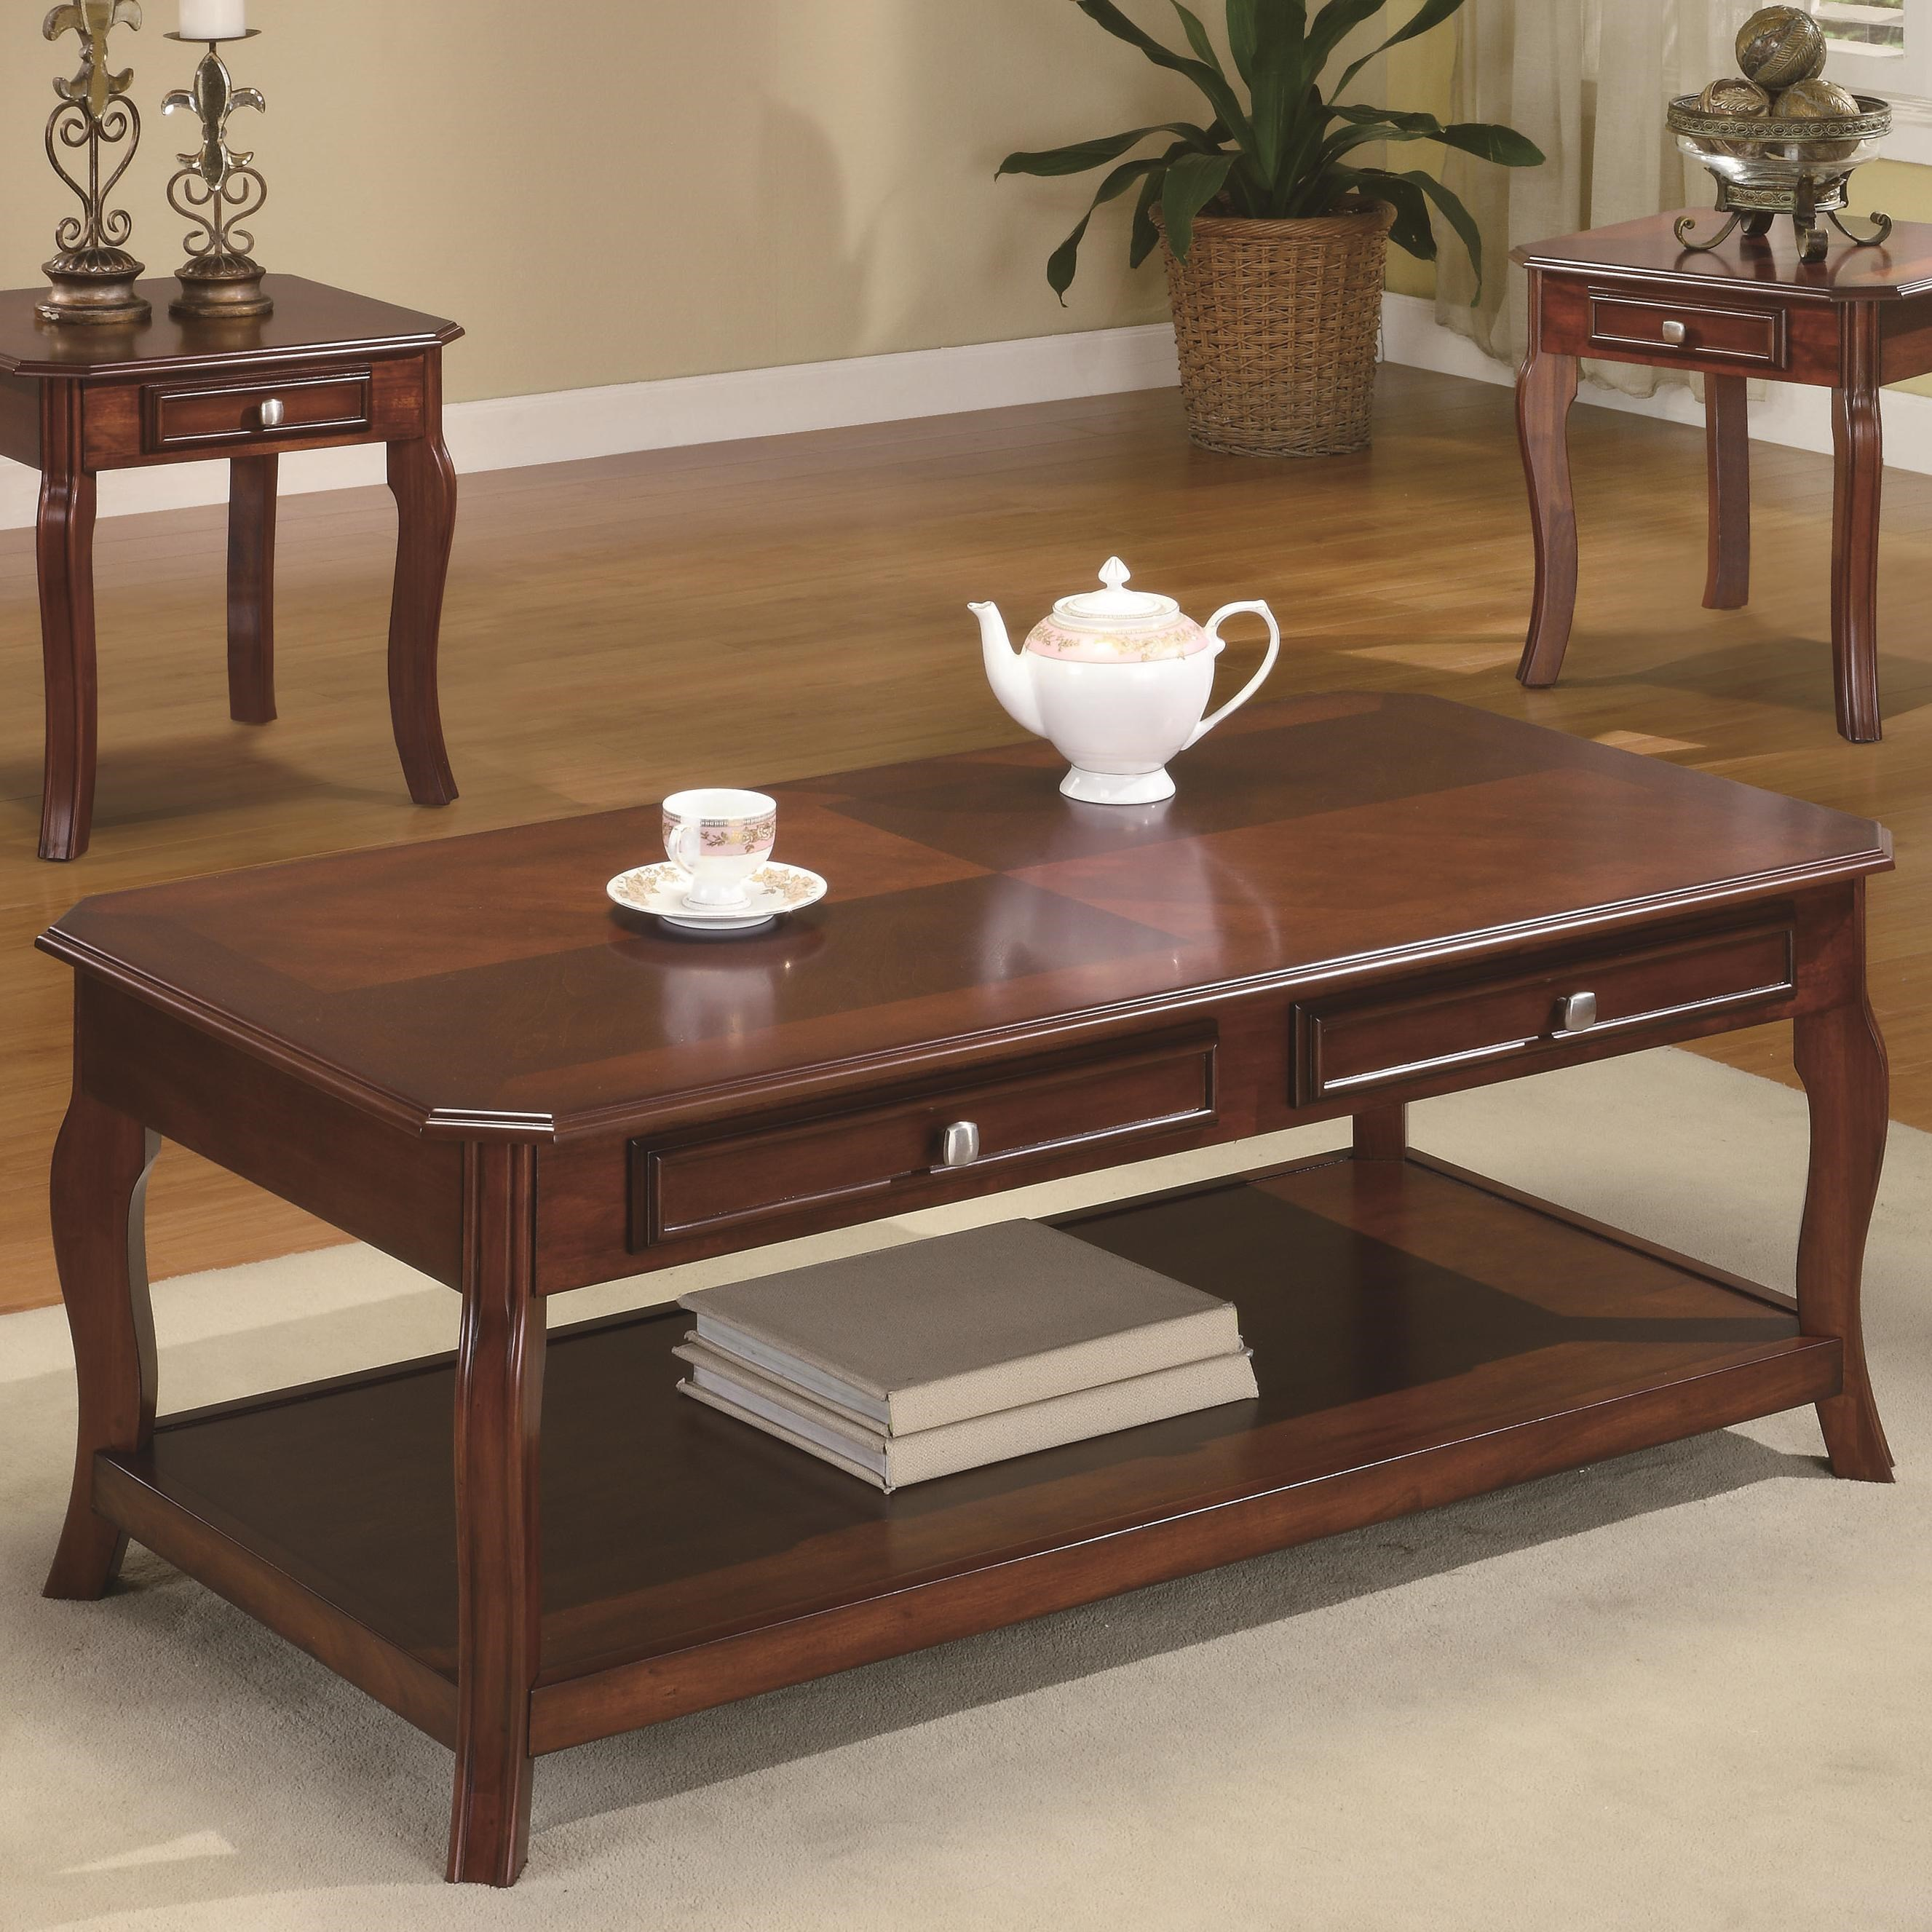 Charmant ... Coaster Occasional Table Sets3 Piece Table Set